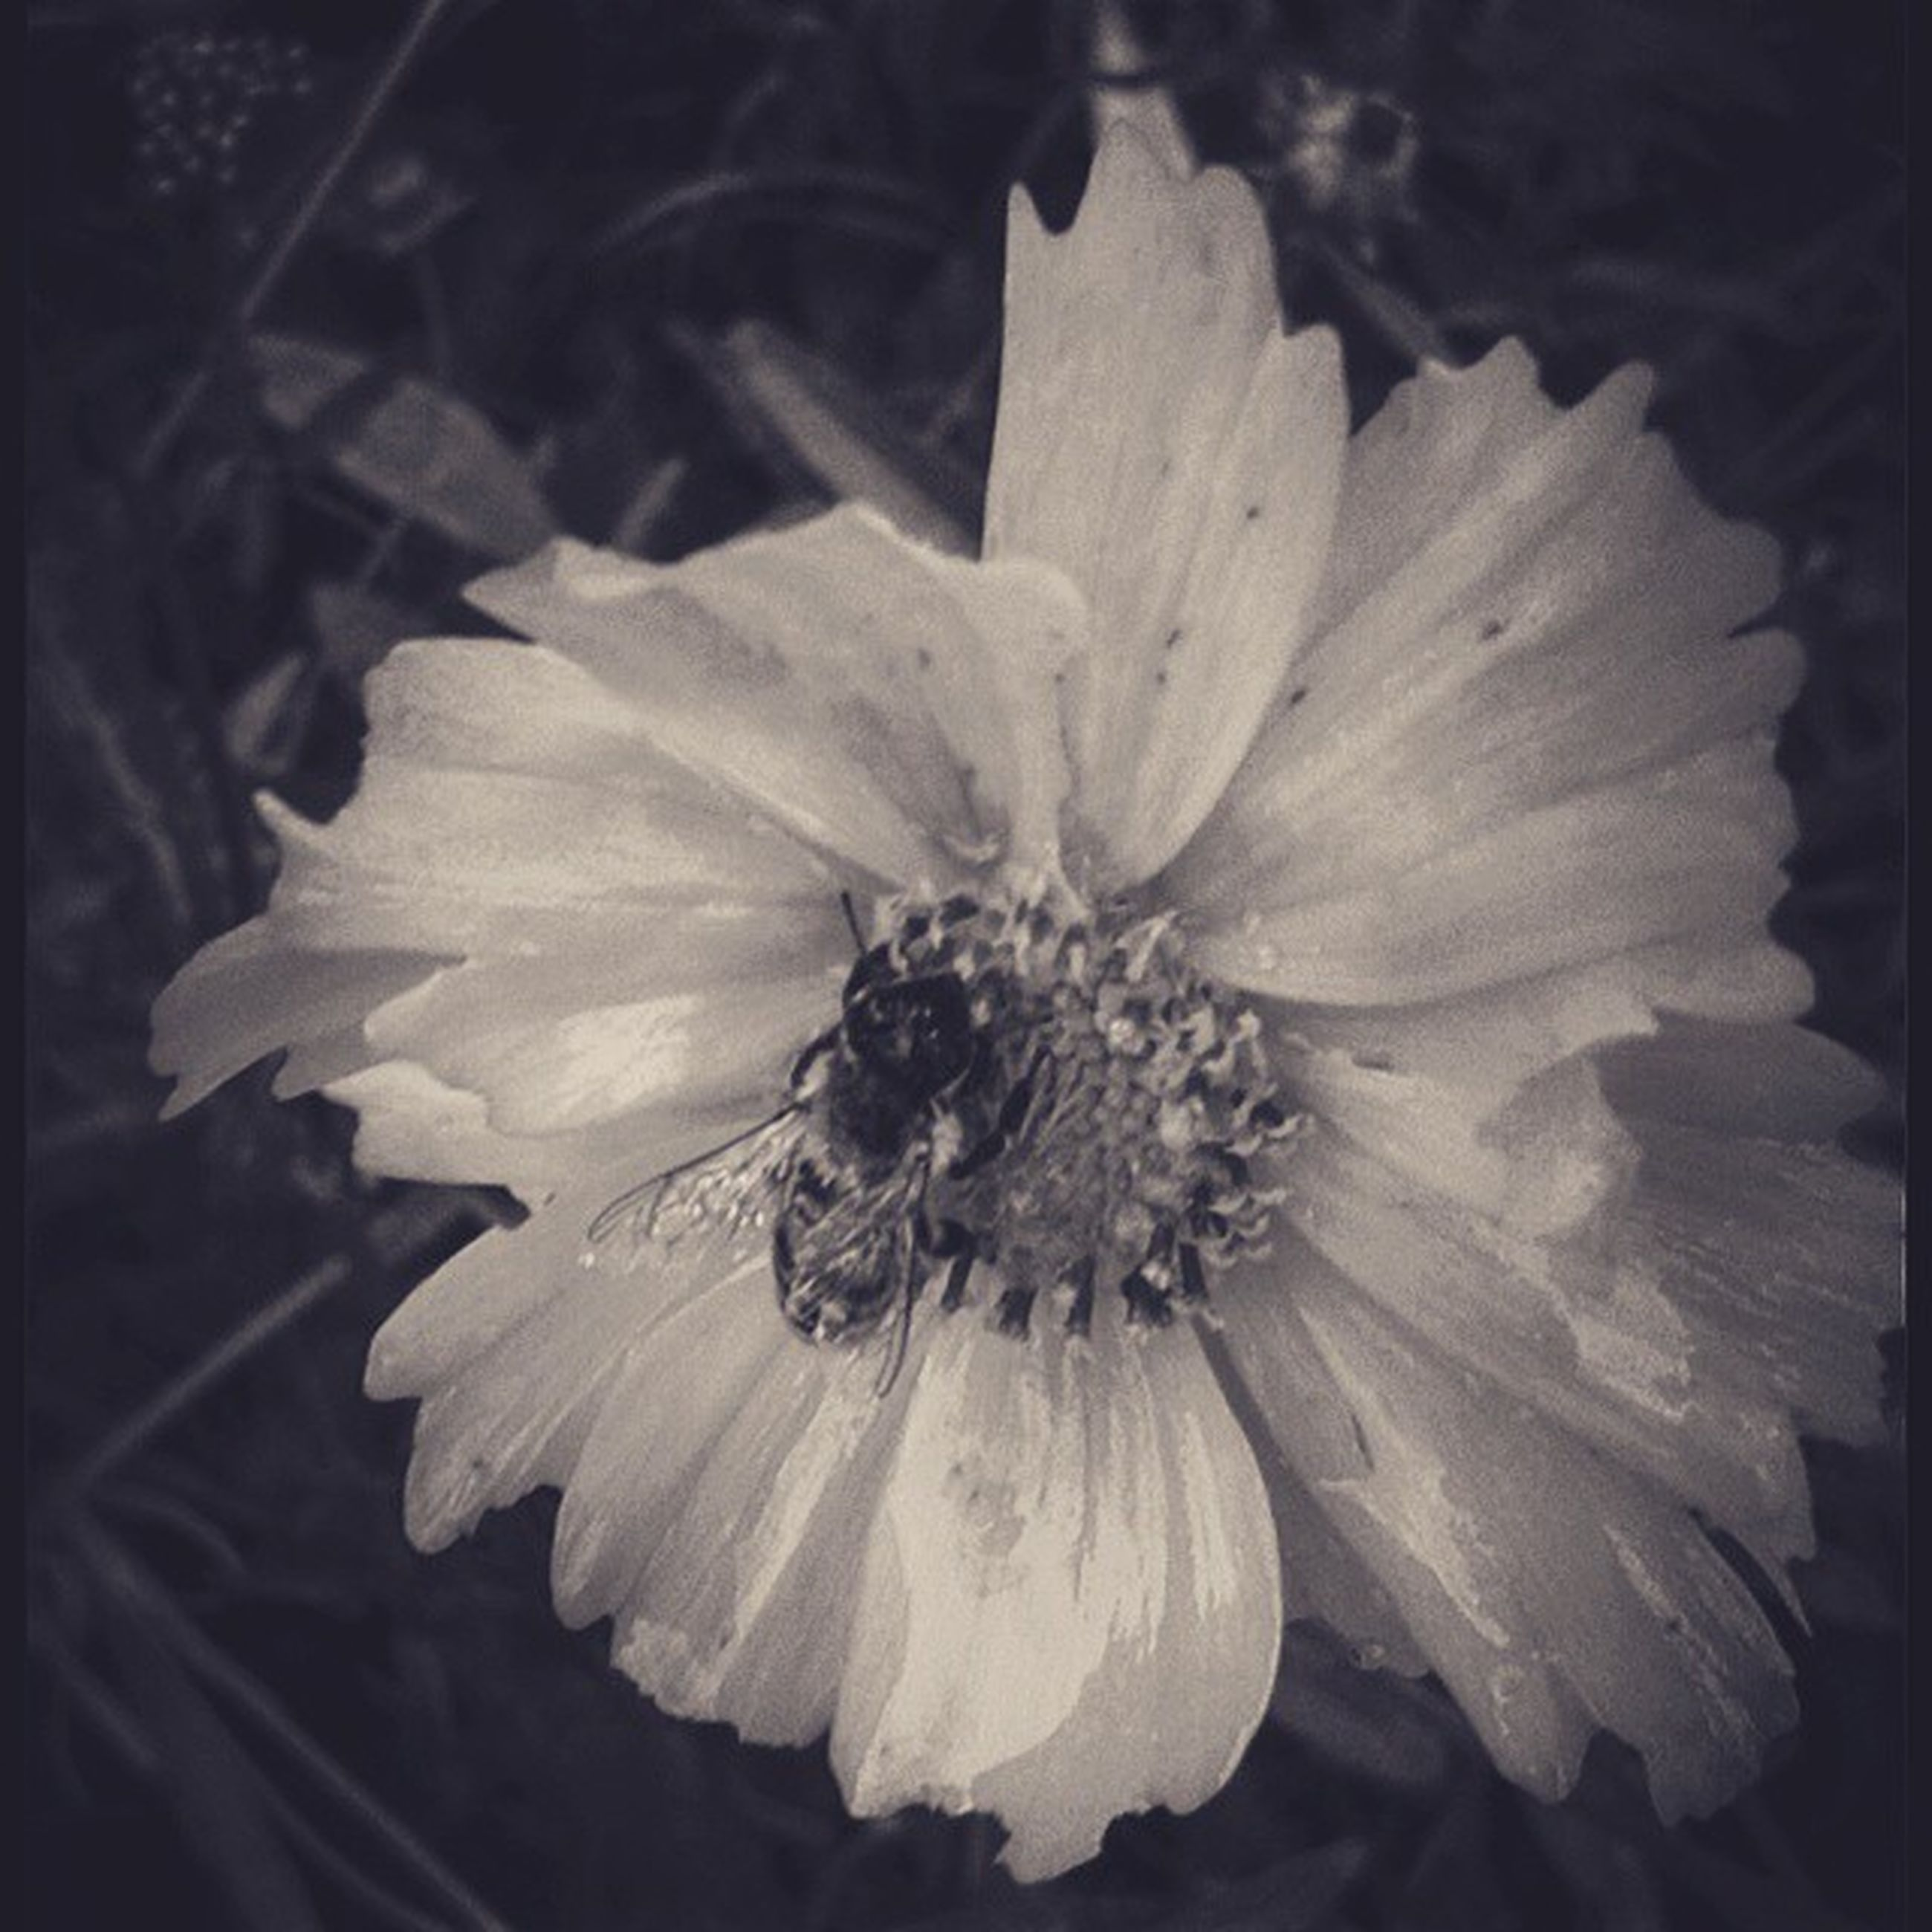 flower, petal, flower head, fragility, freshness, single flower, close-up, beauty in nature, pollen, growth, nature, blooming, stamen, in bloom, plant, focus on foreground, auto post production filter, outdoors, macro, selective focus